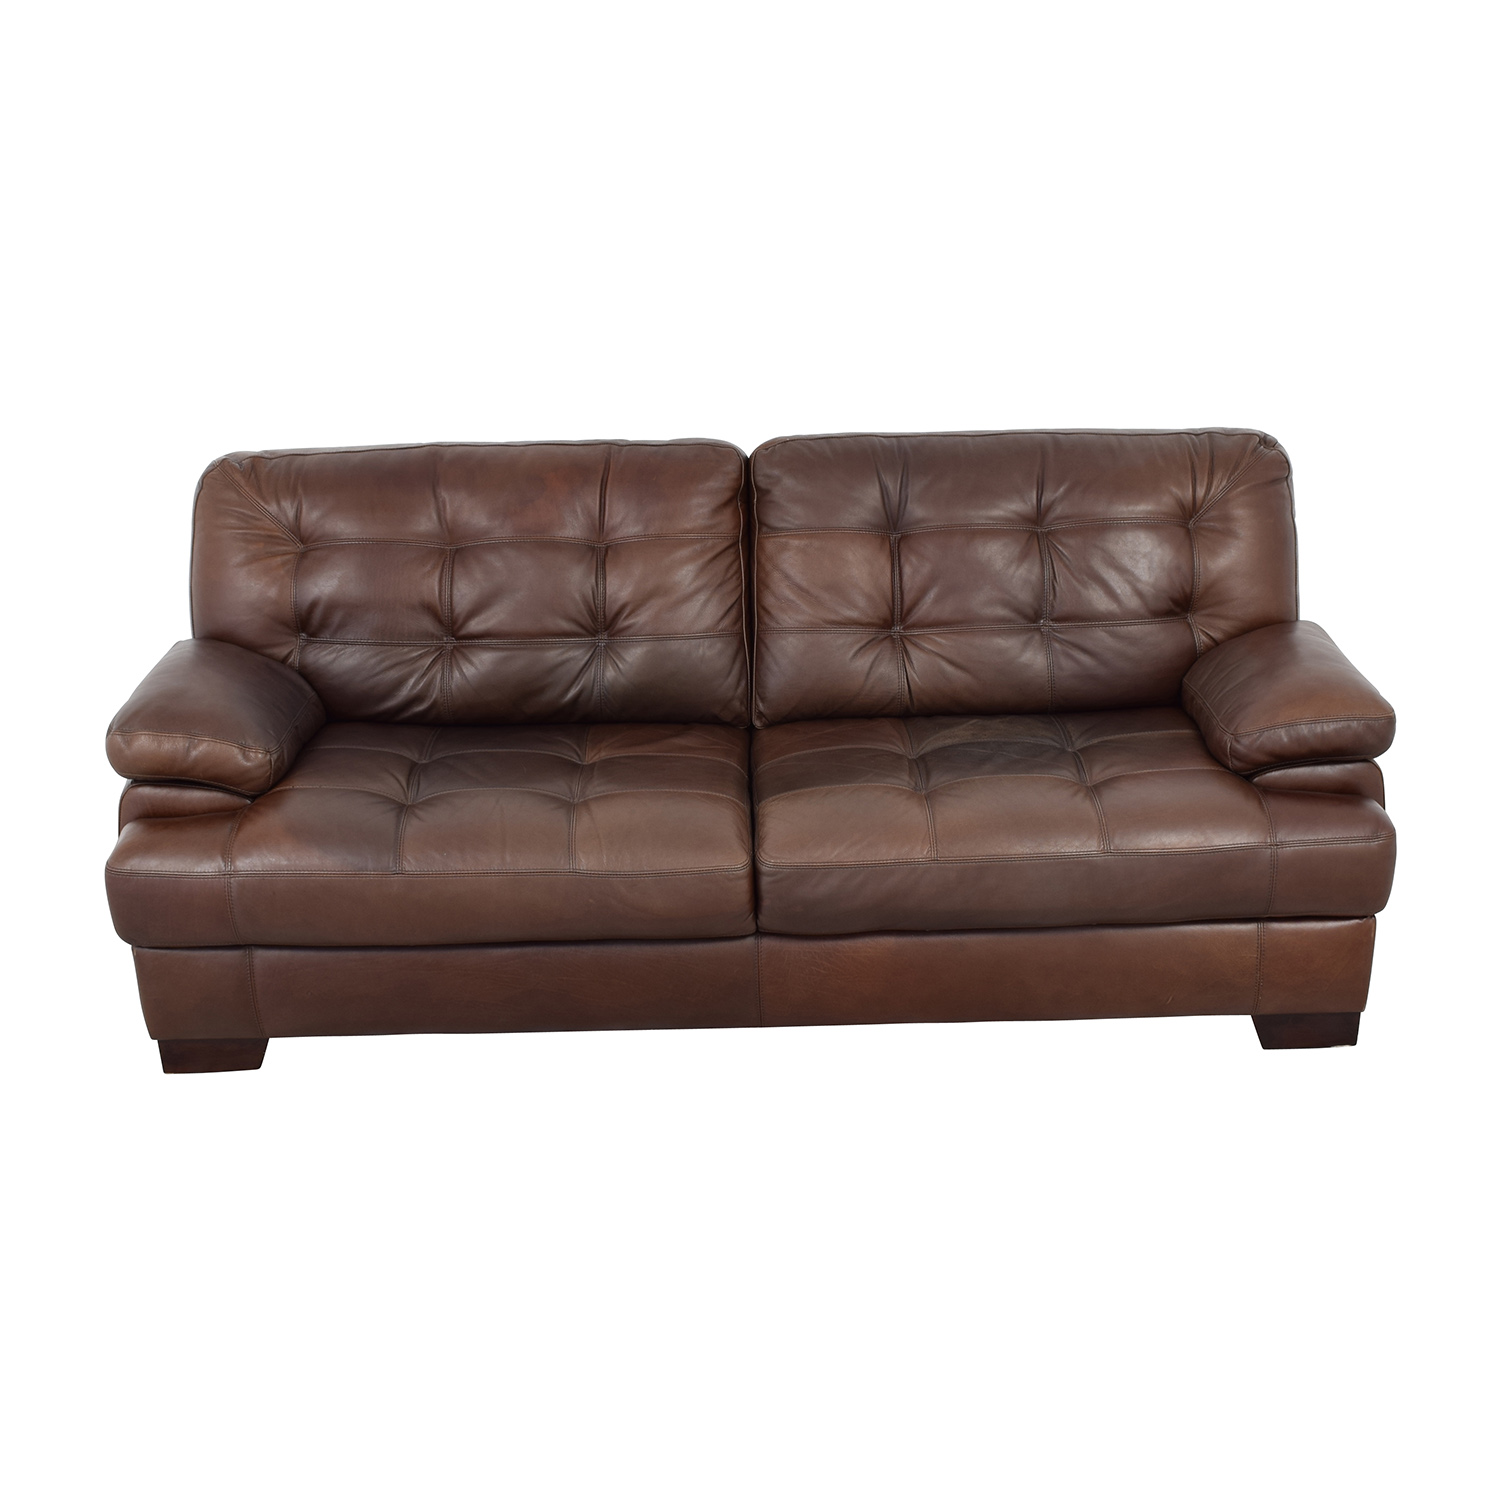 Dark Brown Couch Dark Brown Sofa North S Dark Brown Living Room Set By